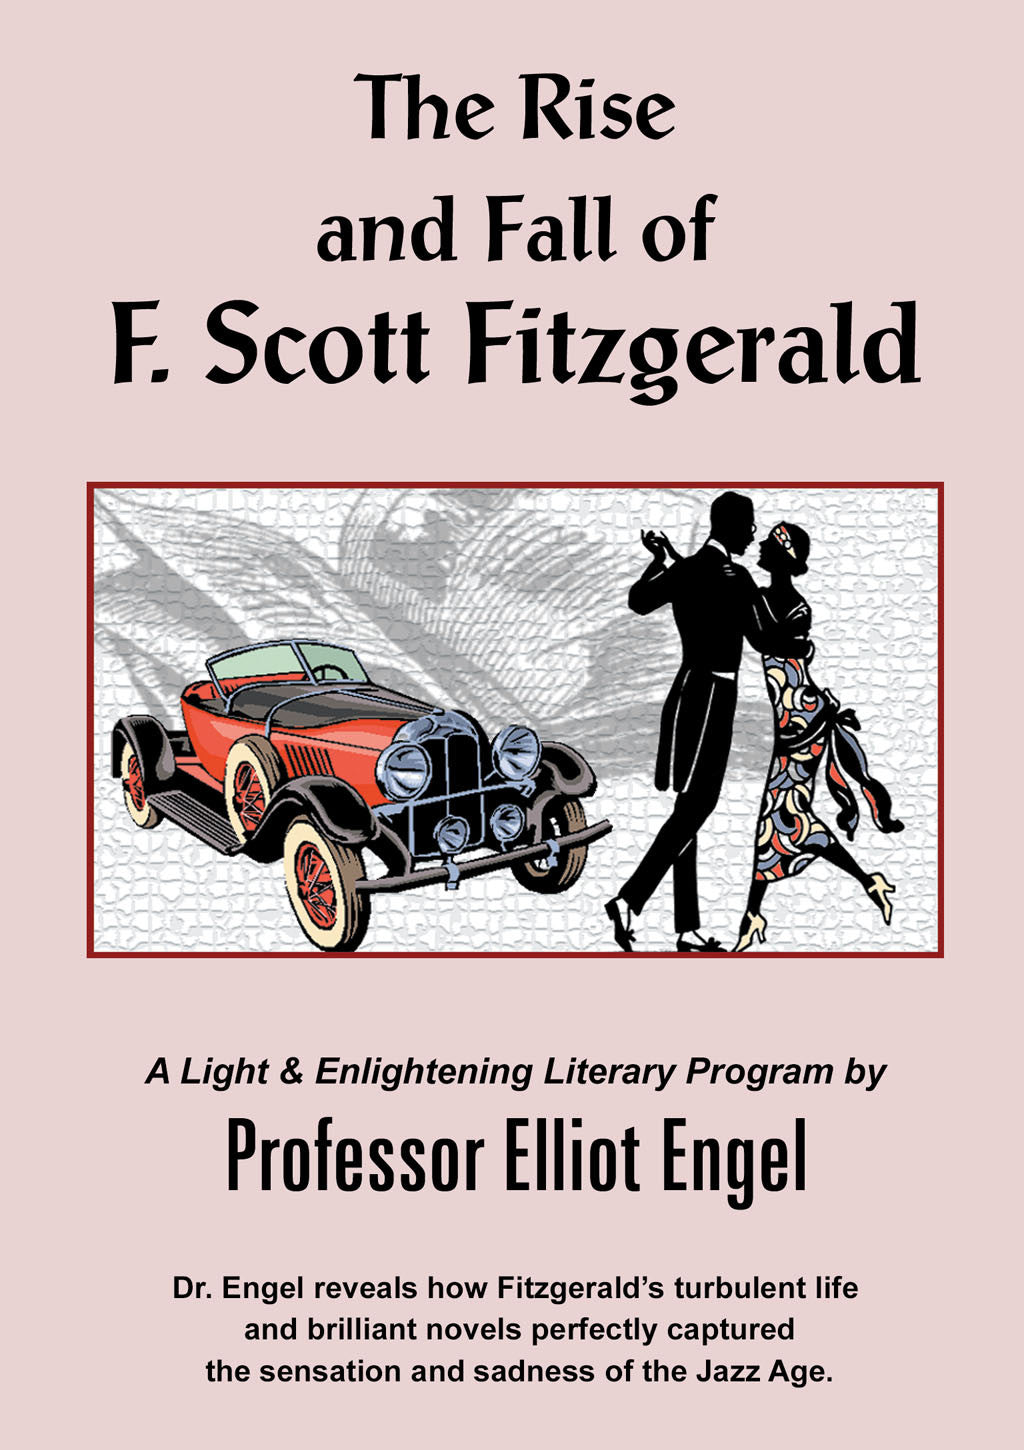 The Rise & Fall of F. Scott Fitzgerald